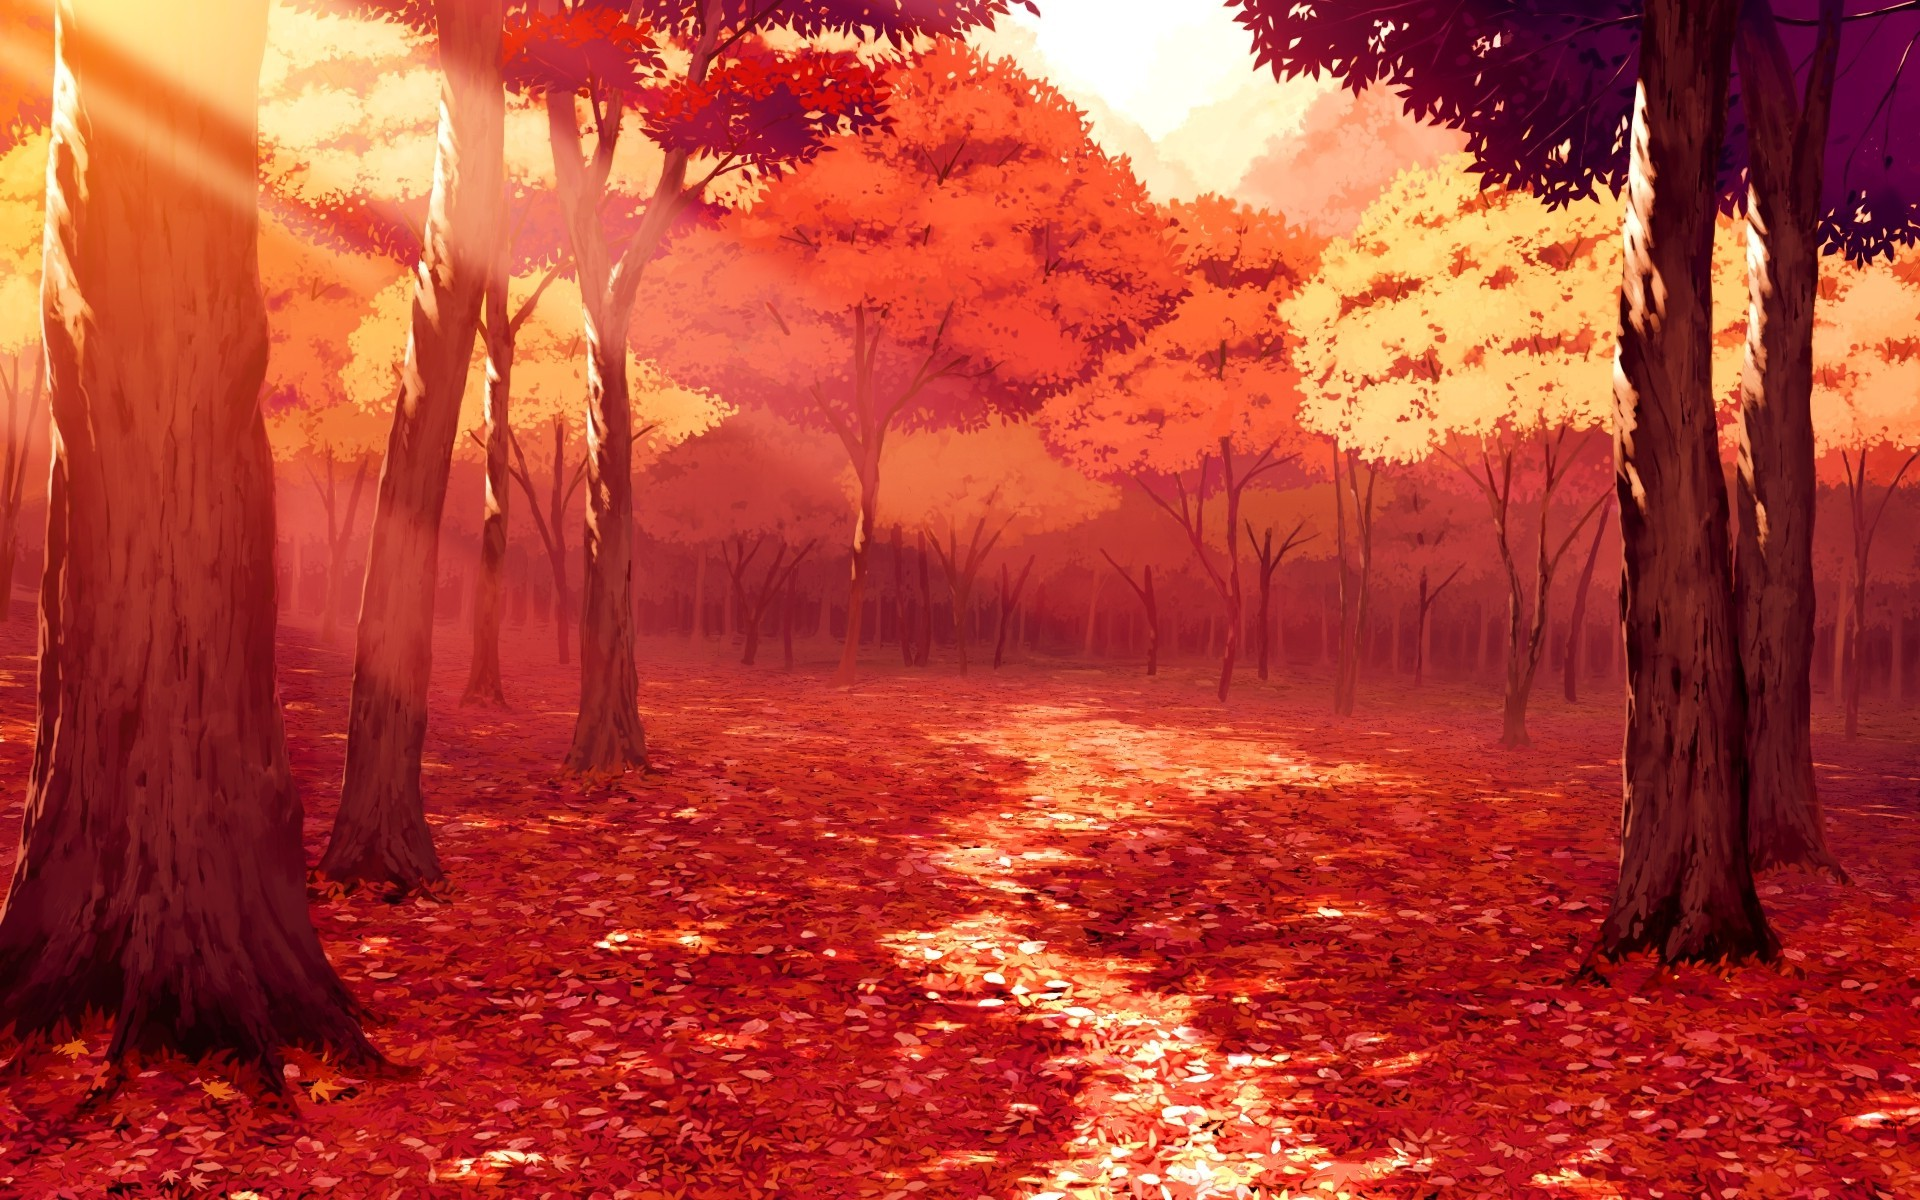 3d Falling Leaves Animated Wallpaper Drawing Artwork Fall Leaves Sunlight Forest Red